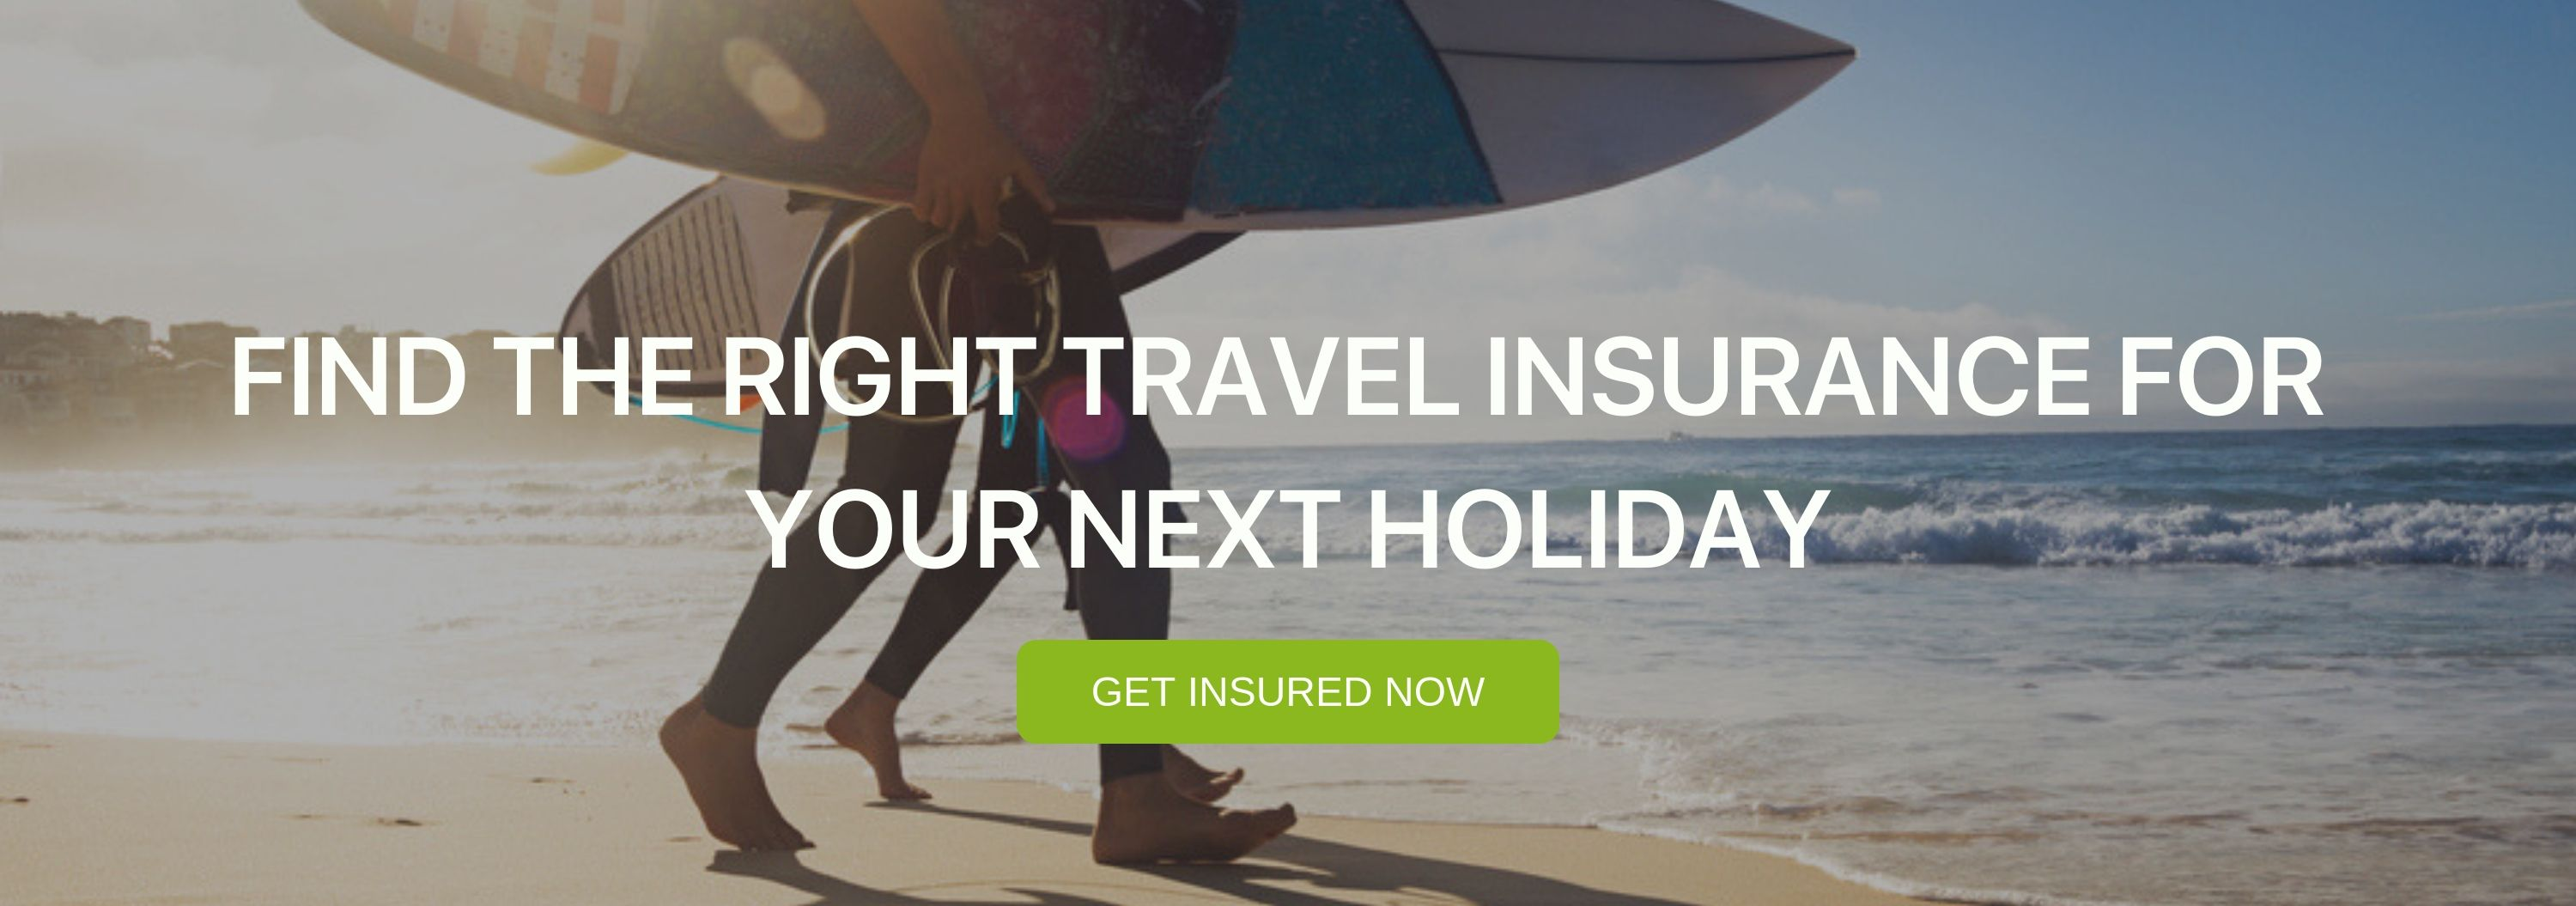 "A banner that says ""Find the right travel insurance for your holiday"""